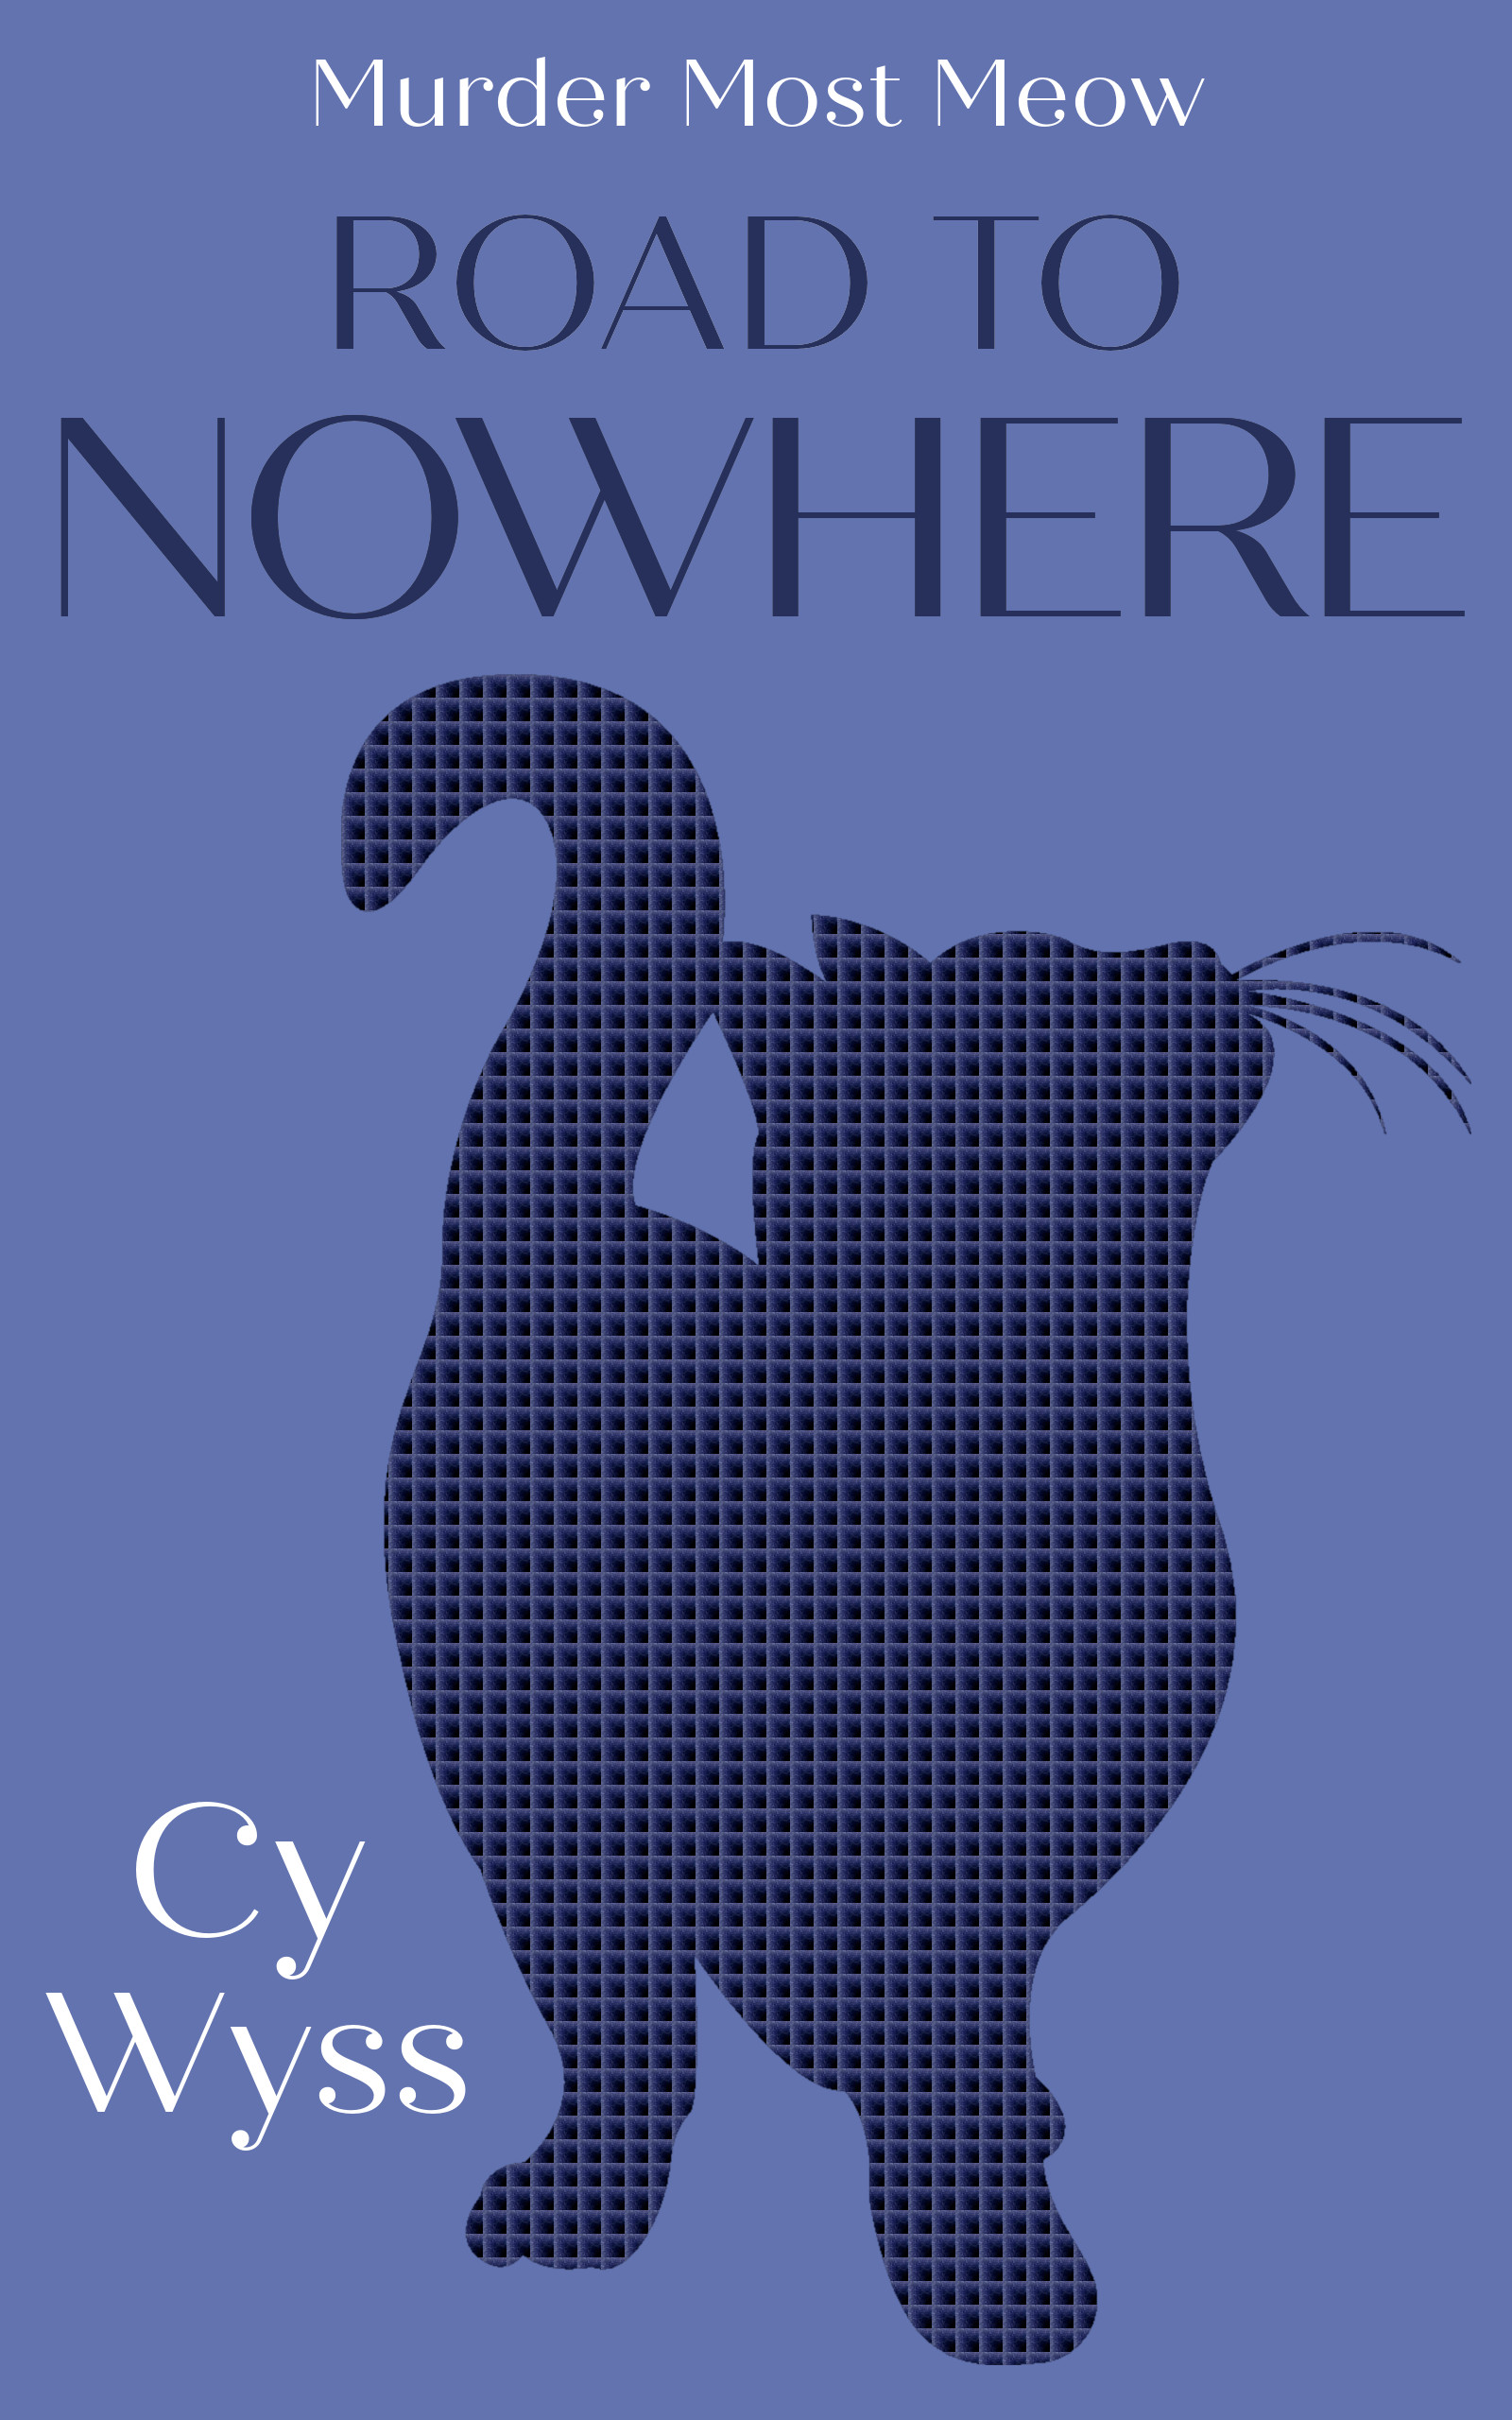 Road To Nowhere by Cy Wyss